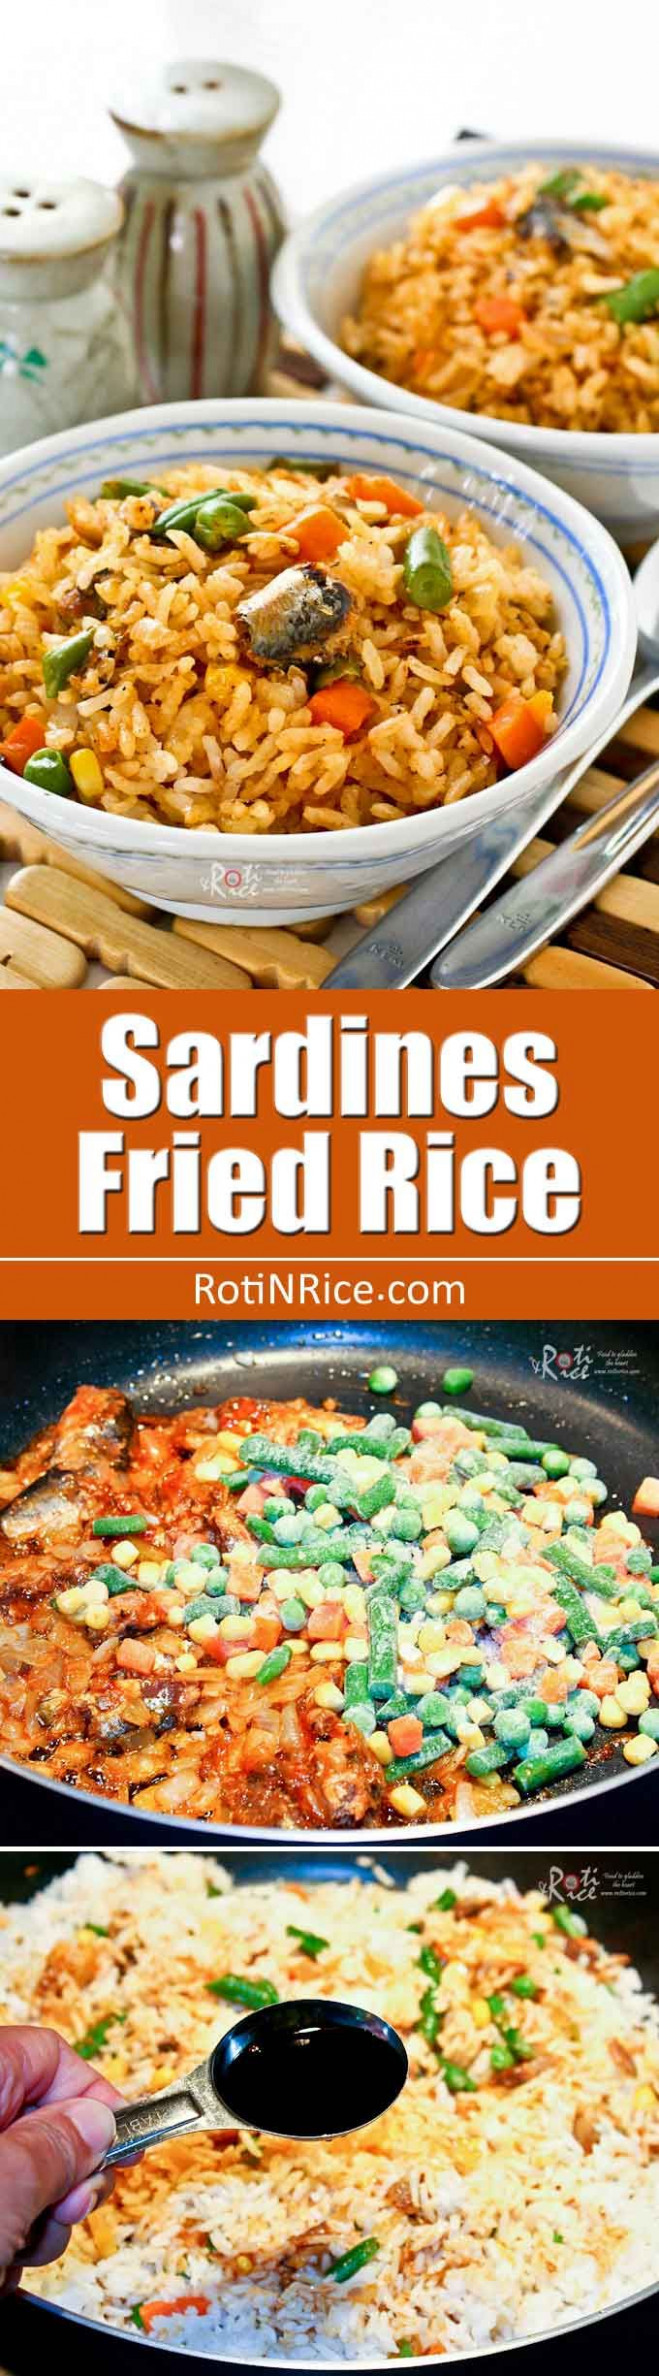 Sardines Fried Rice | Recipe | Food to try | Sardine ..